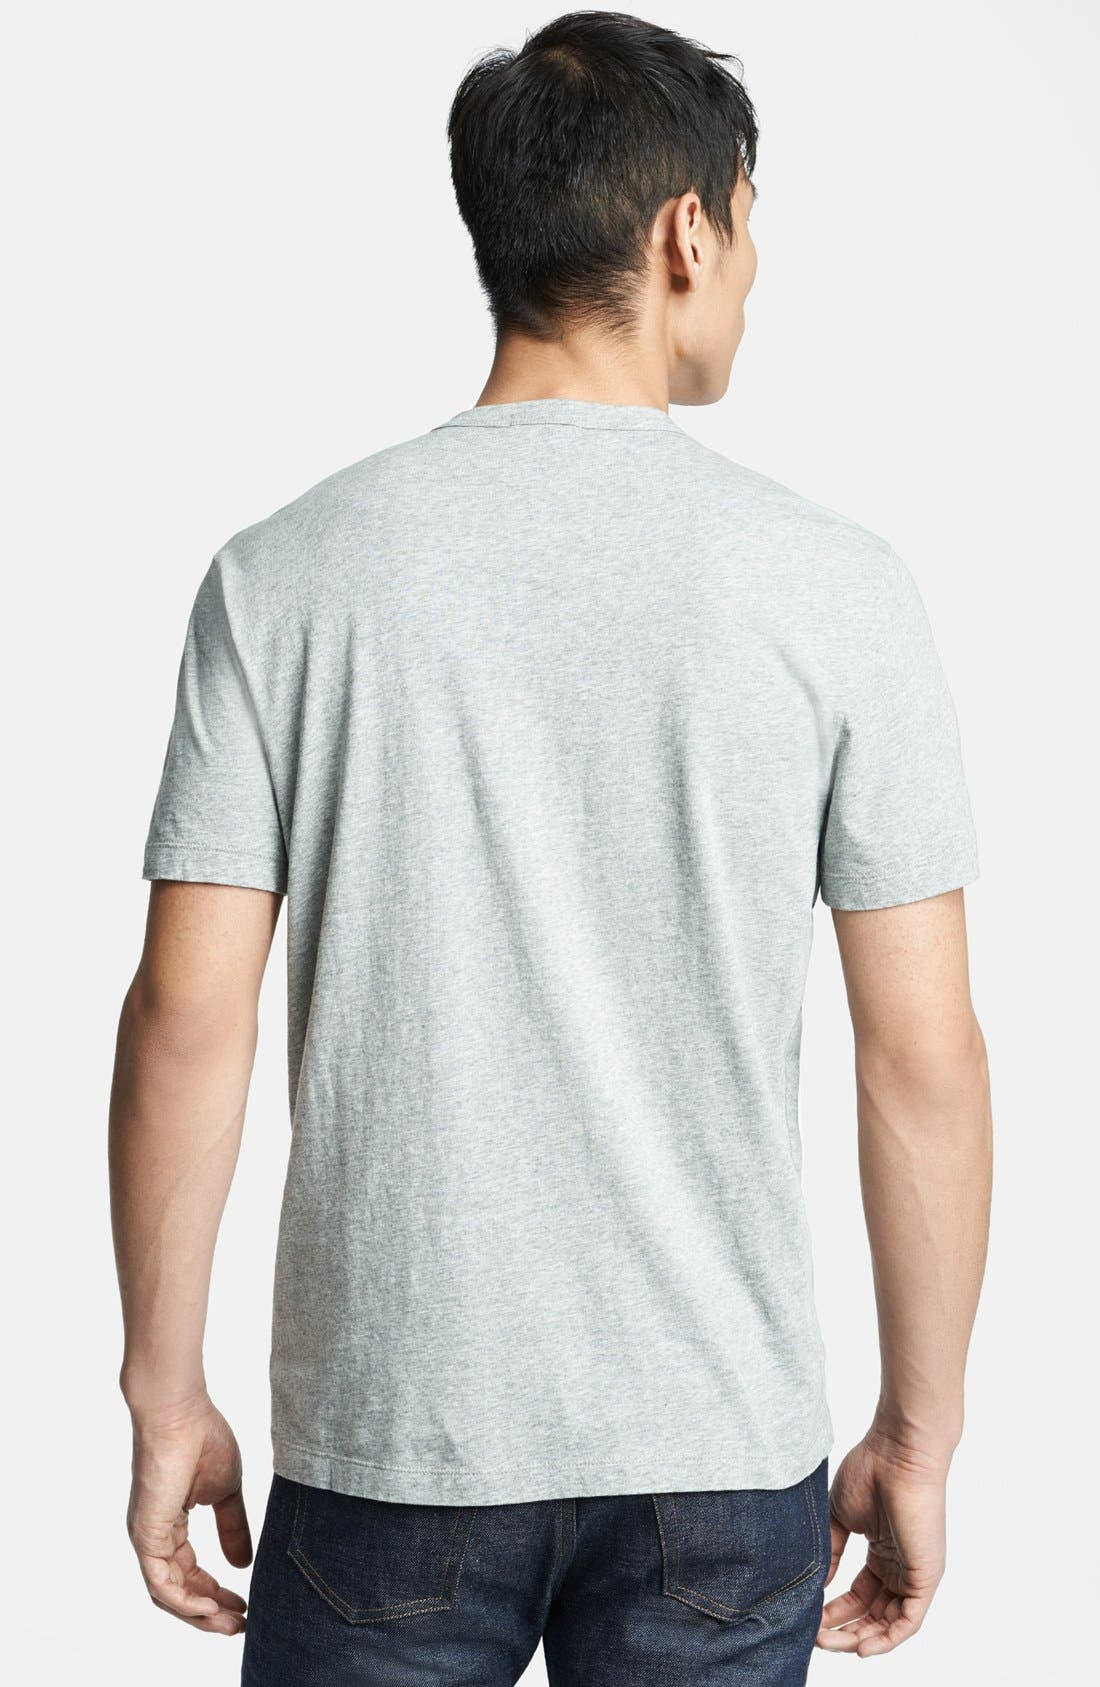 Alternate Image 2  - James Perse 'Classic' Crewneck T-Shirt